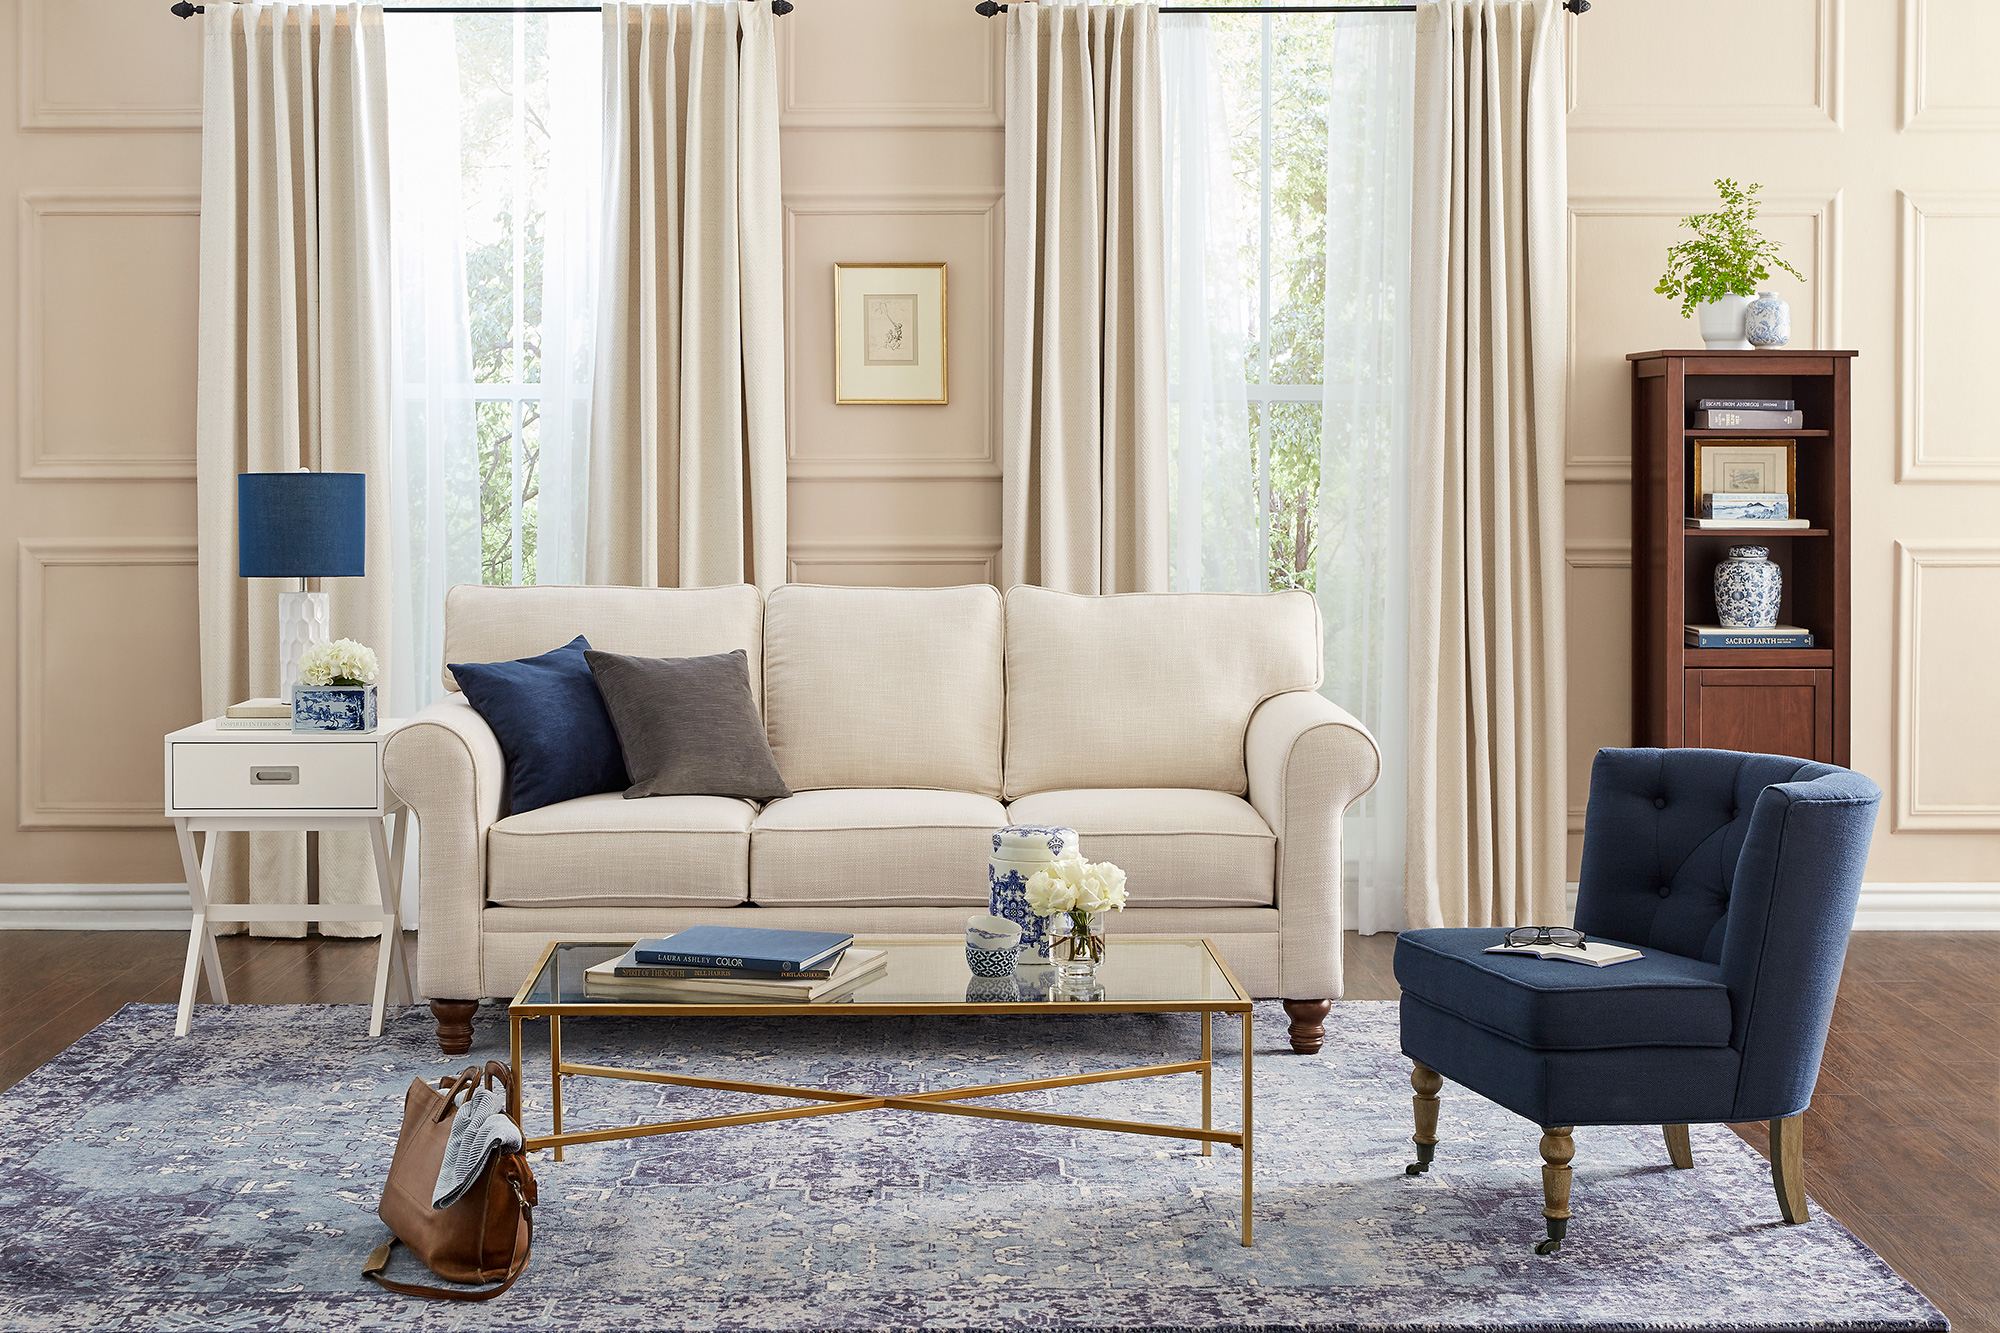 alert off dario end table ravenna home living jcpenney accent tables launches its own furnishings collection take peek the affordable items slipper chair teal accessories ashley